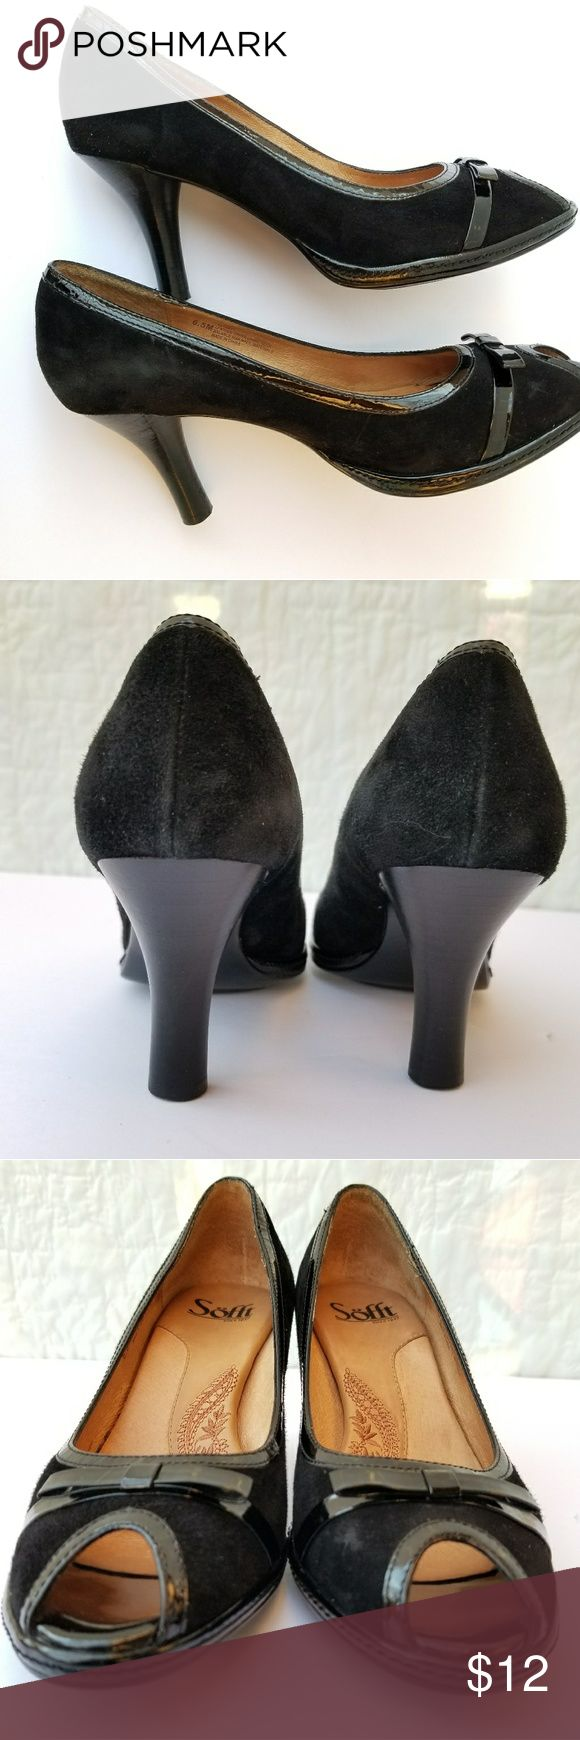 Sofft Suede open toe pumps with Bow Black suede open toed pump with patent leather bow and trim. Sofft Shoes Heels